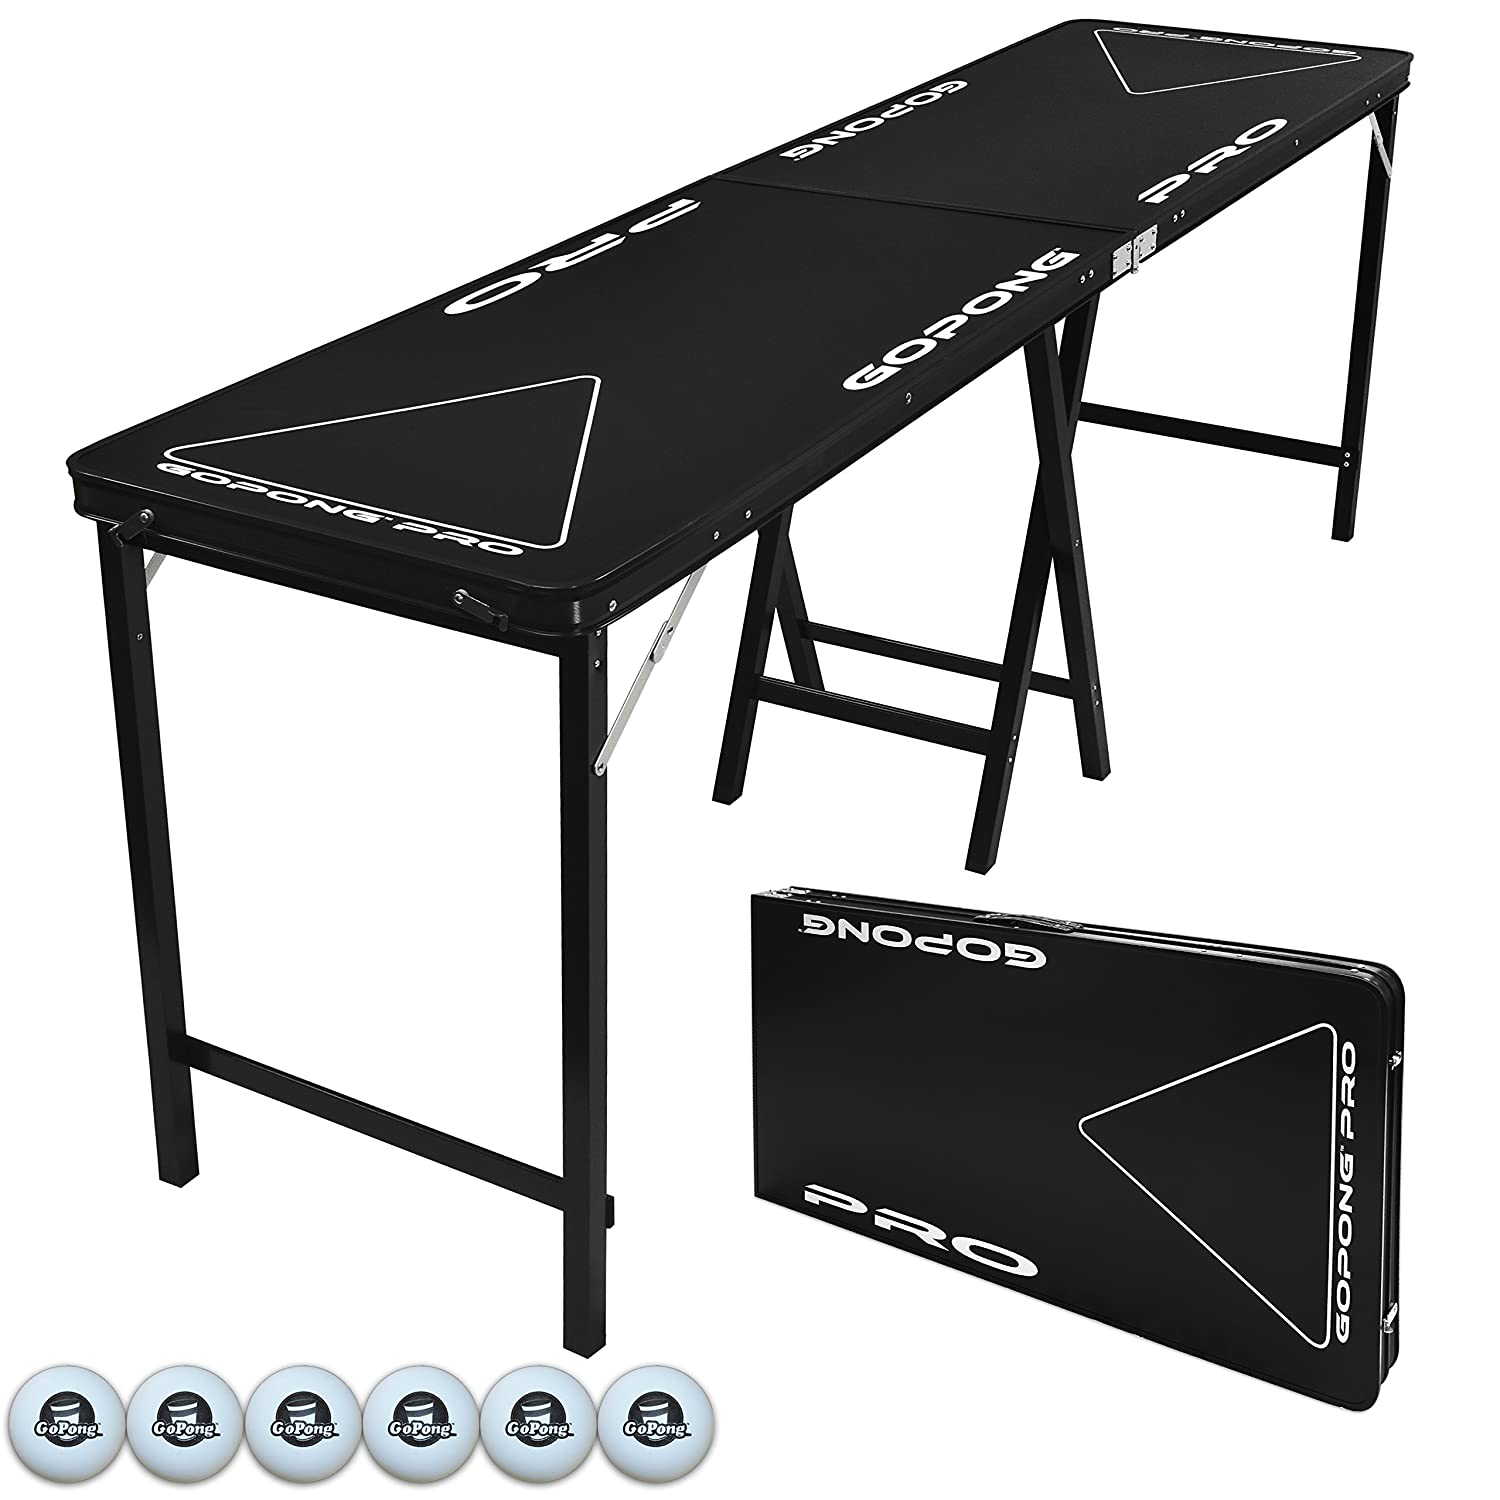 Beer pong table dimensions - Beer Pong Table Dimensions 8